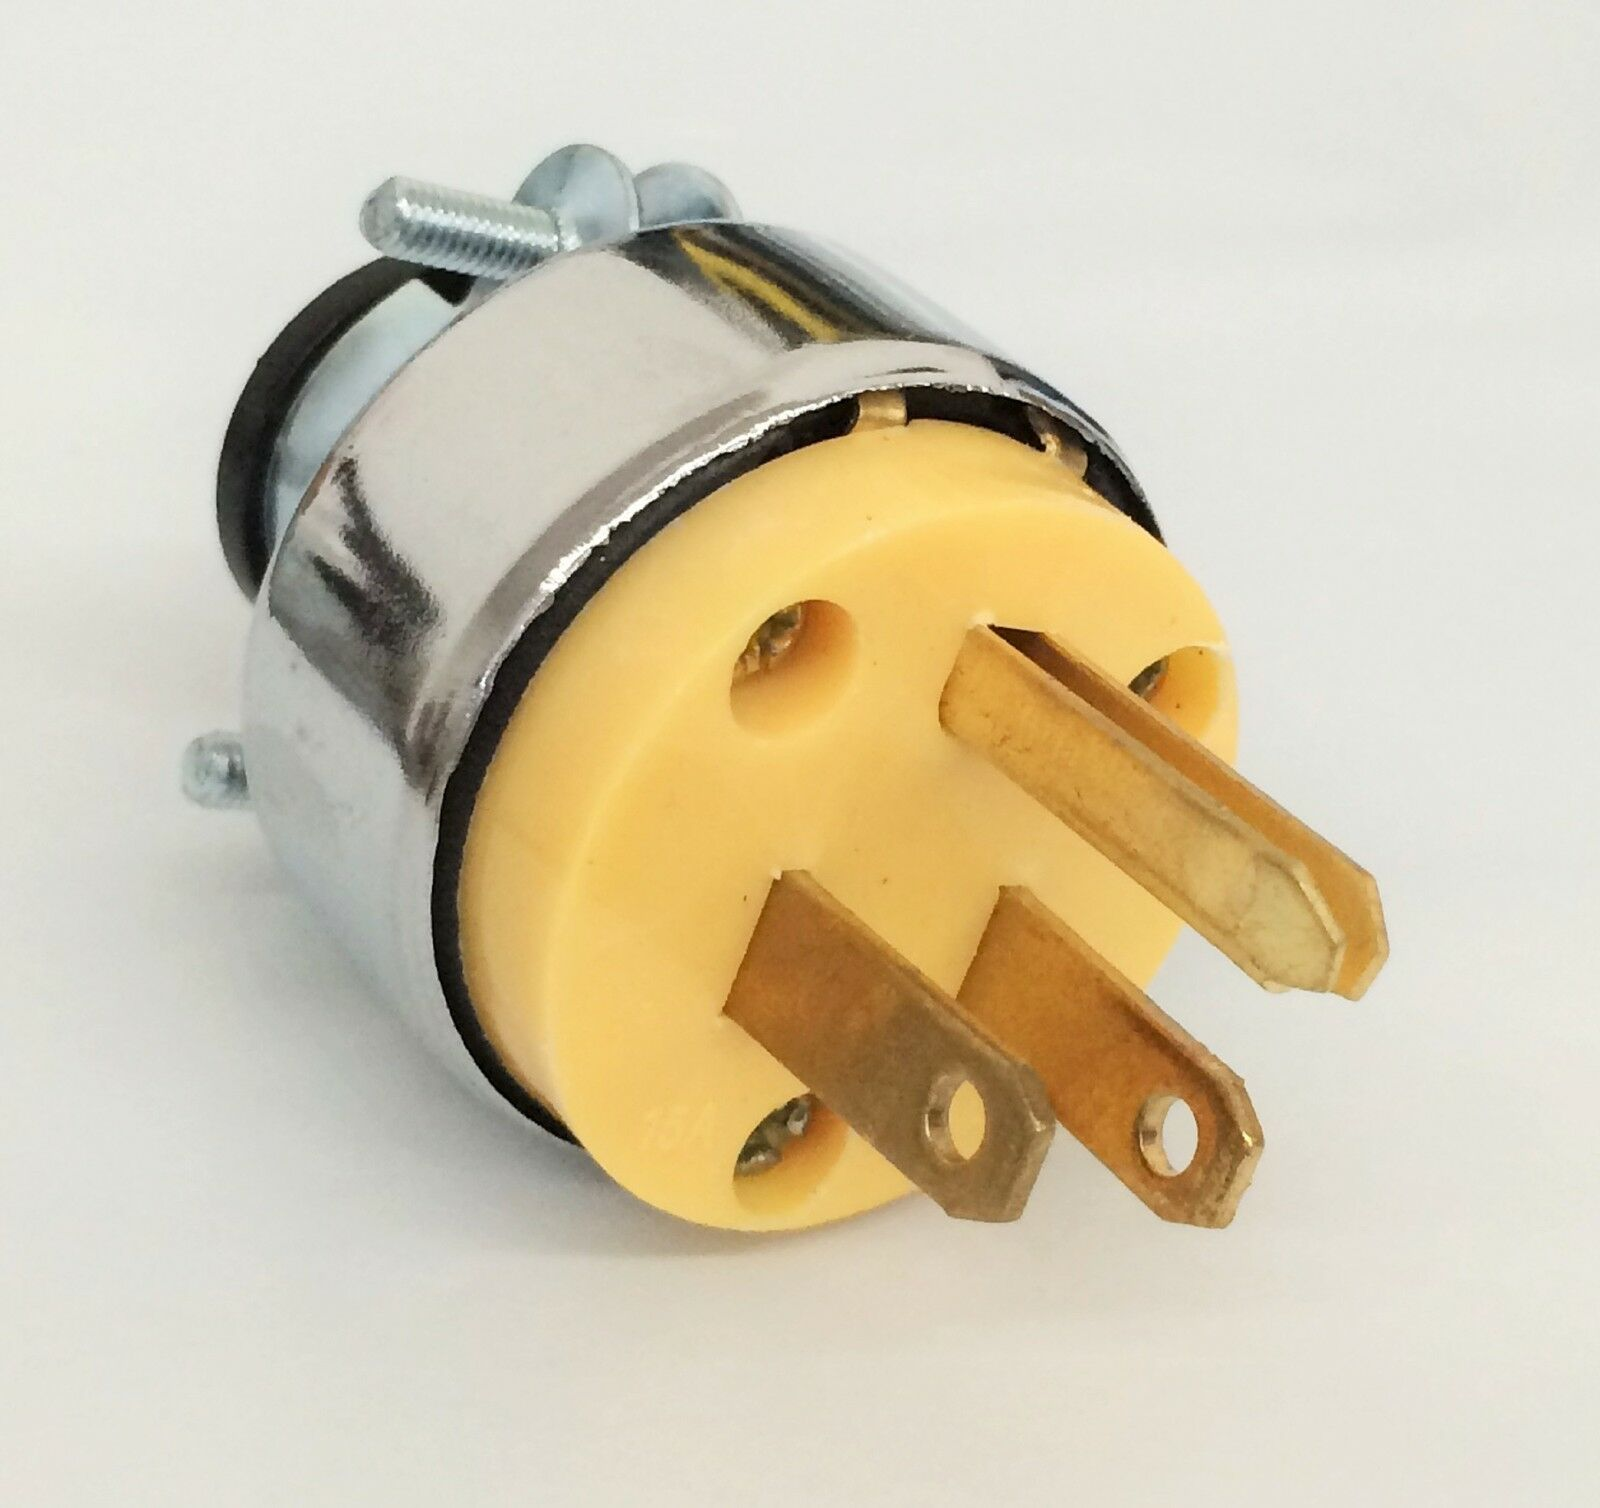 Wennow Male Extension Cord Replacement Electrical Plugs 15amp 125v 3 Prong Ebay Norton Secured Powered By Verisign